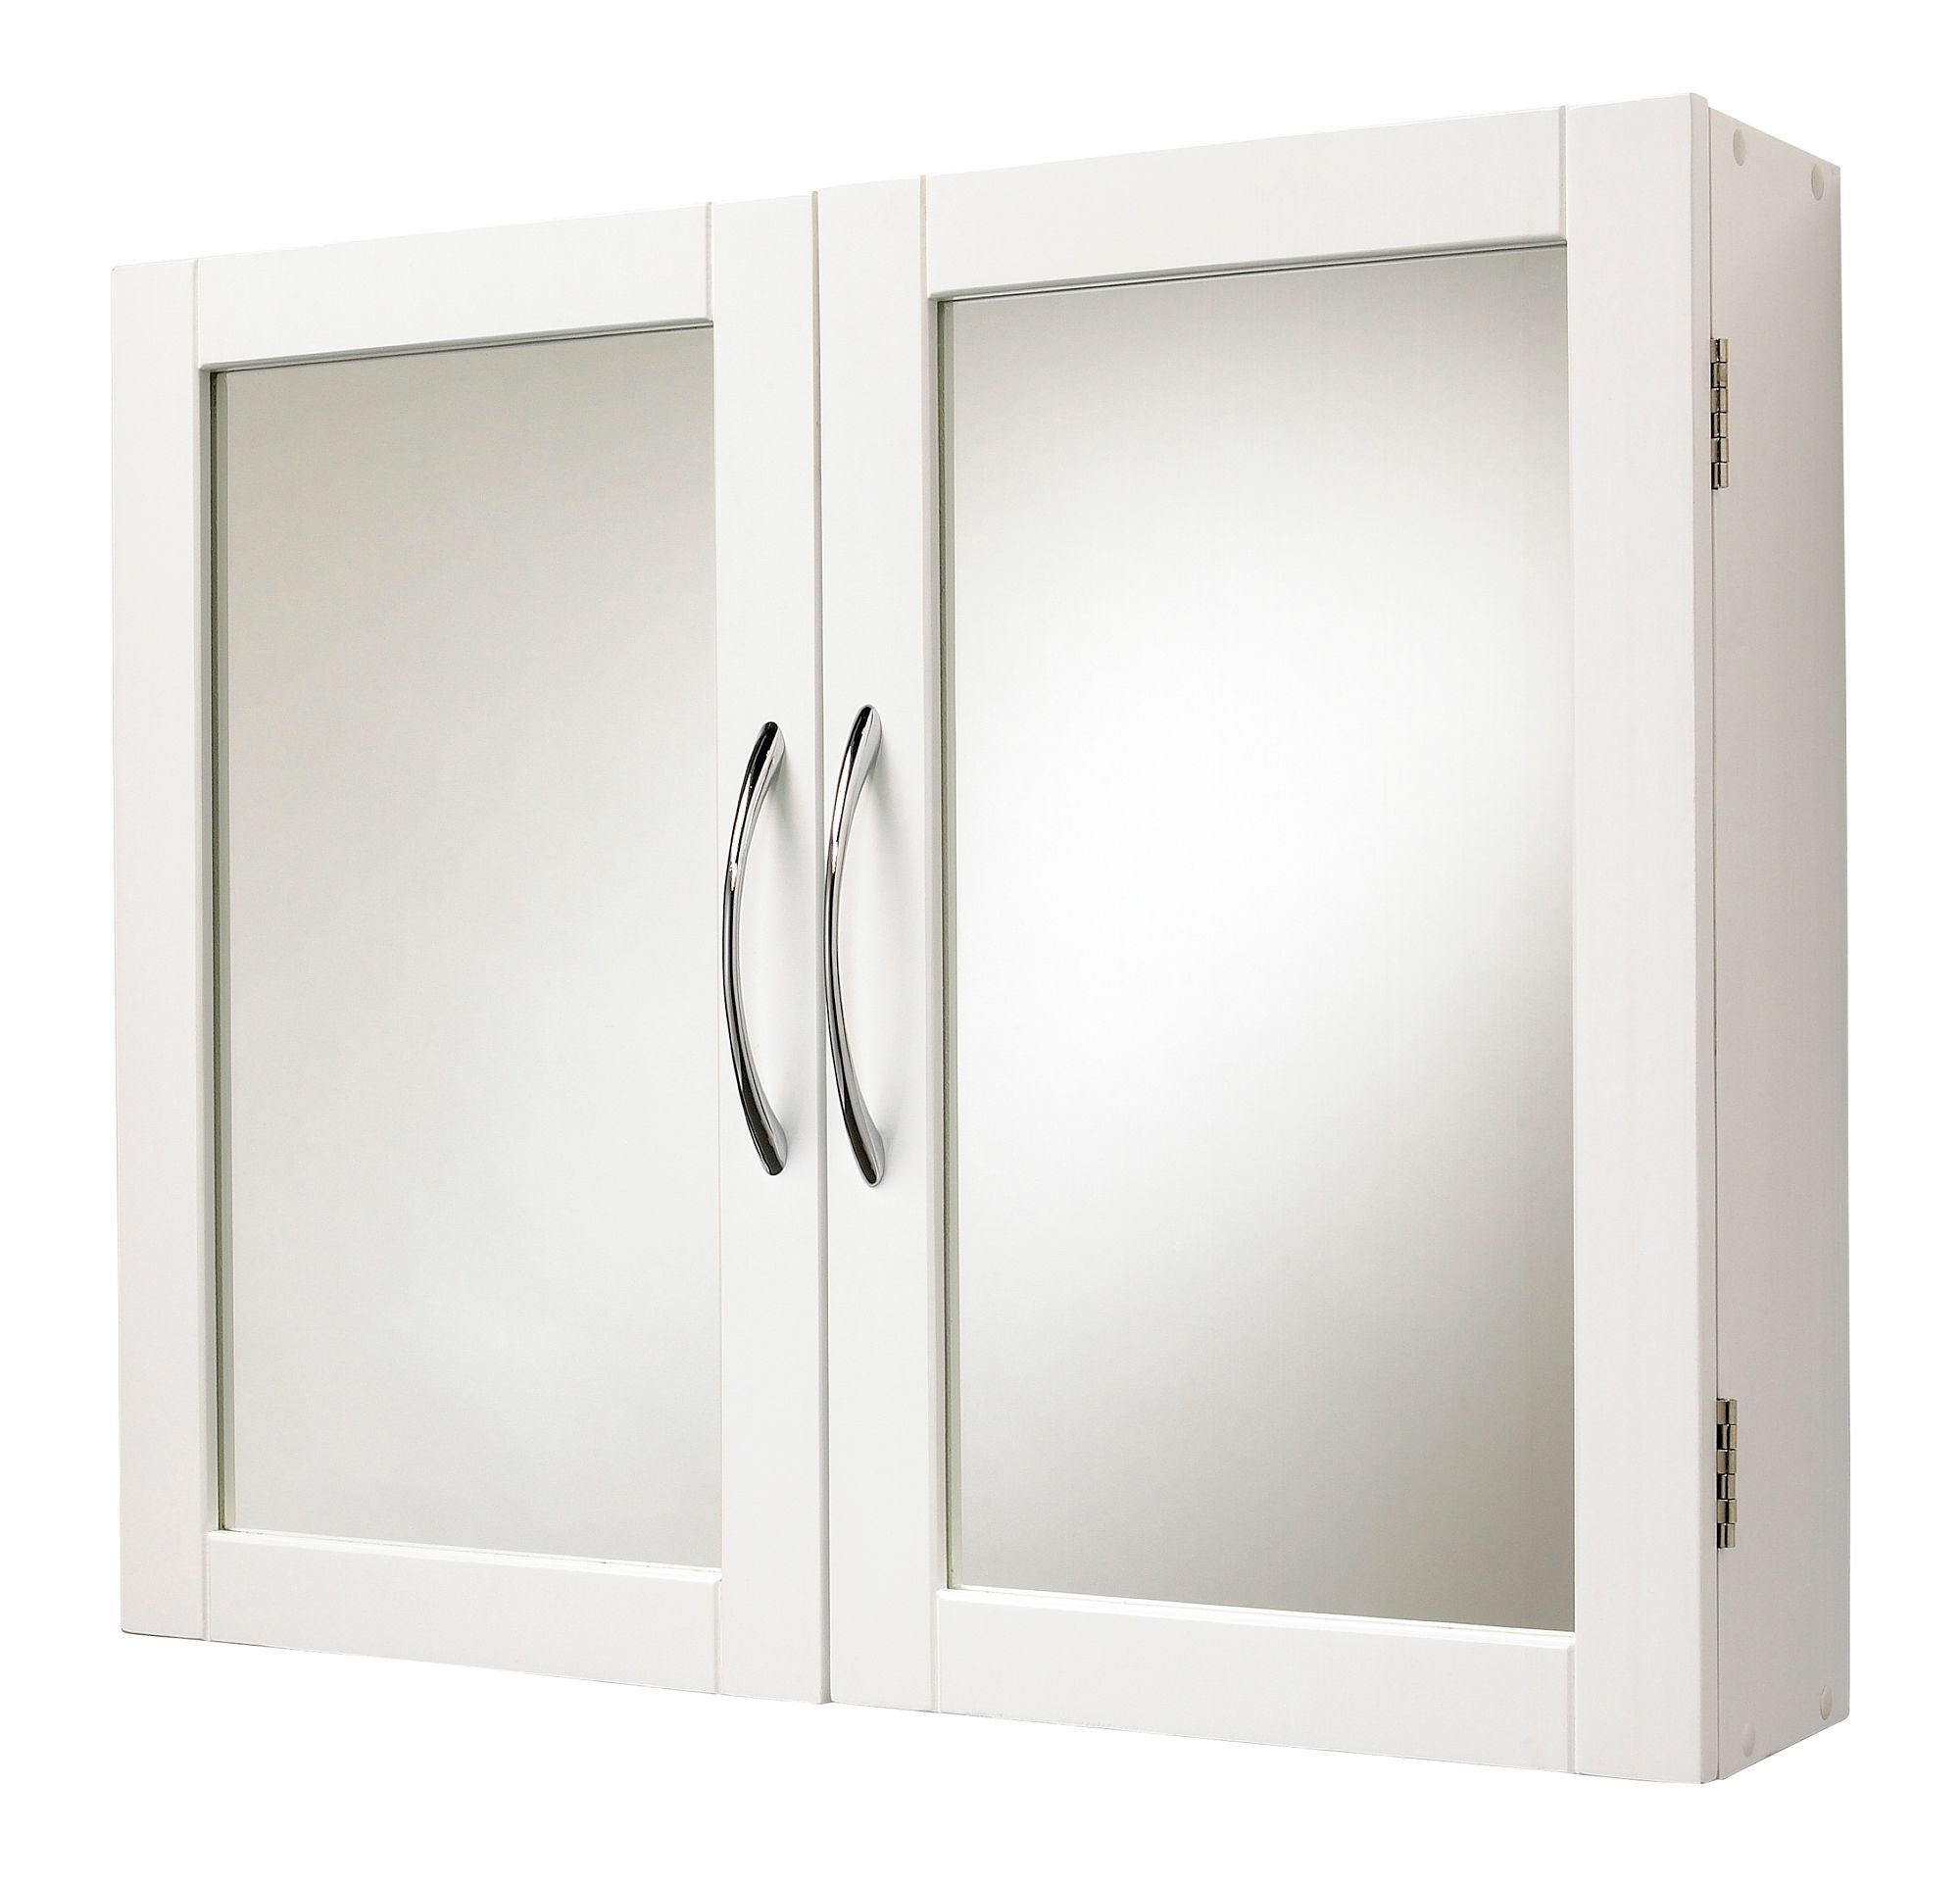 Bathroom Cabinets Uk Bq Lenna Double Door White Mirror Cabinet Departments Diy At Bq